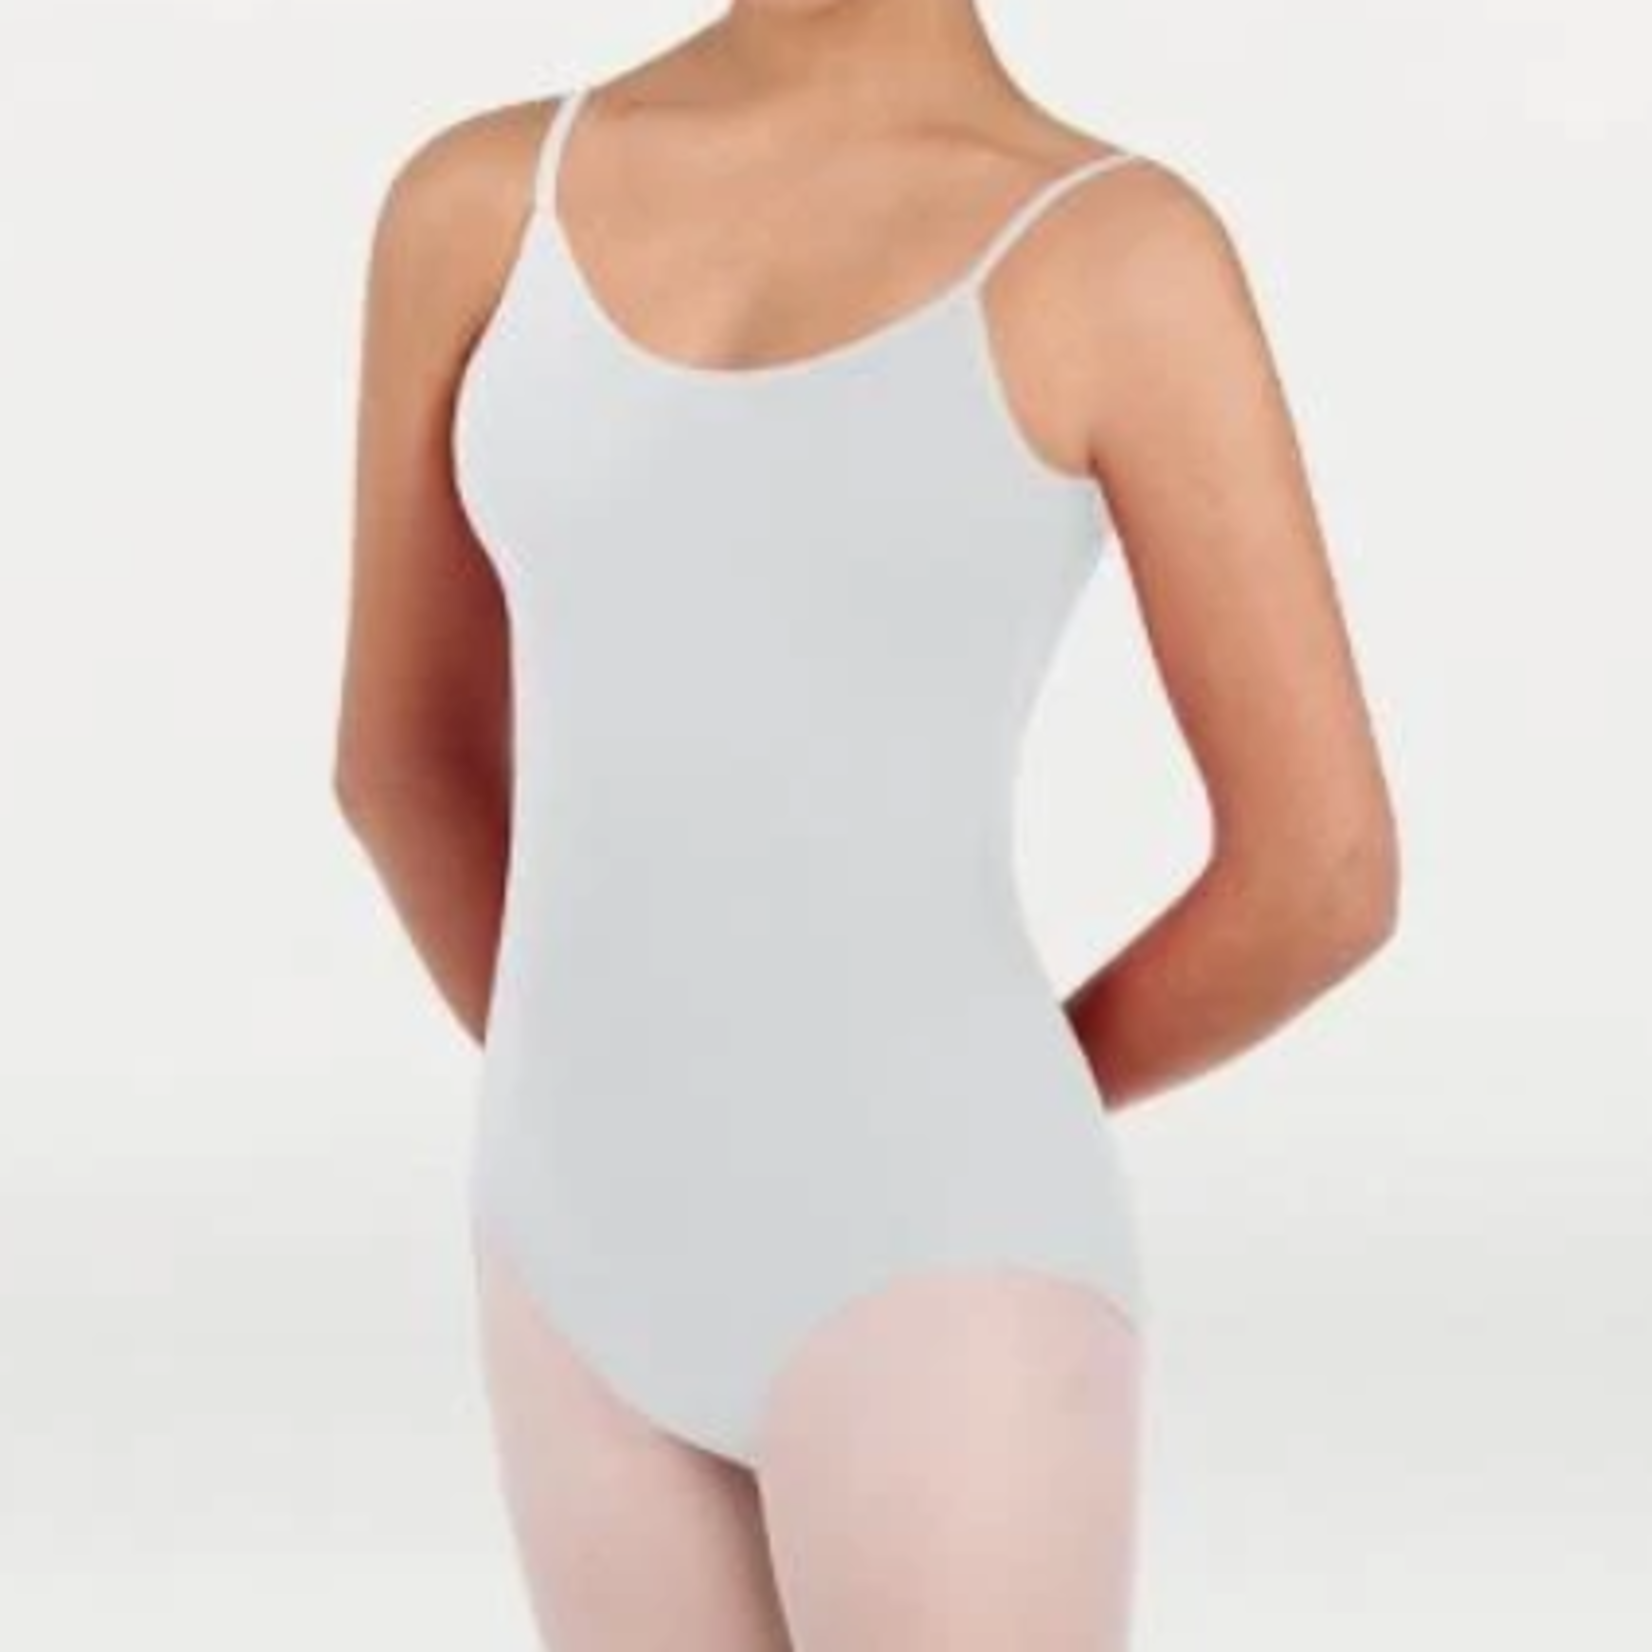 Body Wrappers Body Wrappers BWC324 Adult Camisole Leotard